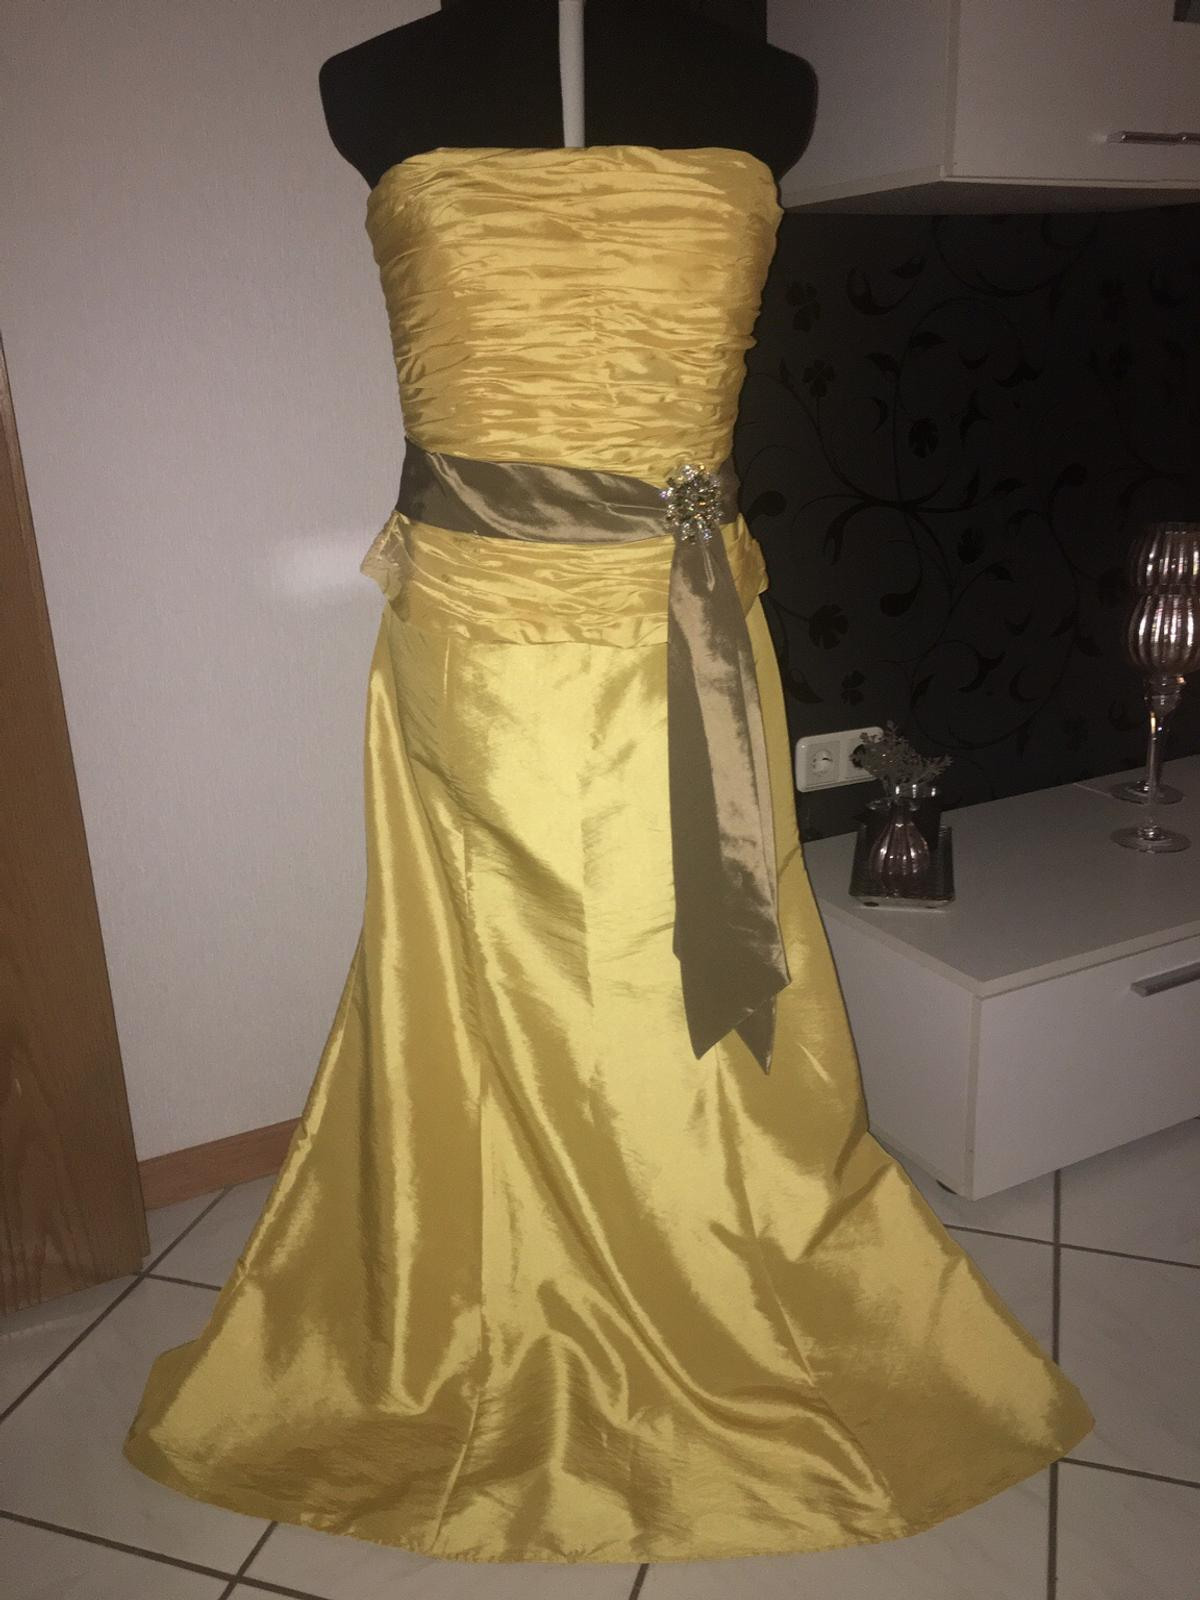 abendkleid gelb in 34466 wolfhagen for €40.00 for sale | shpock